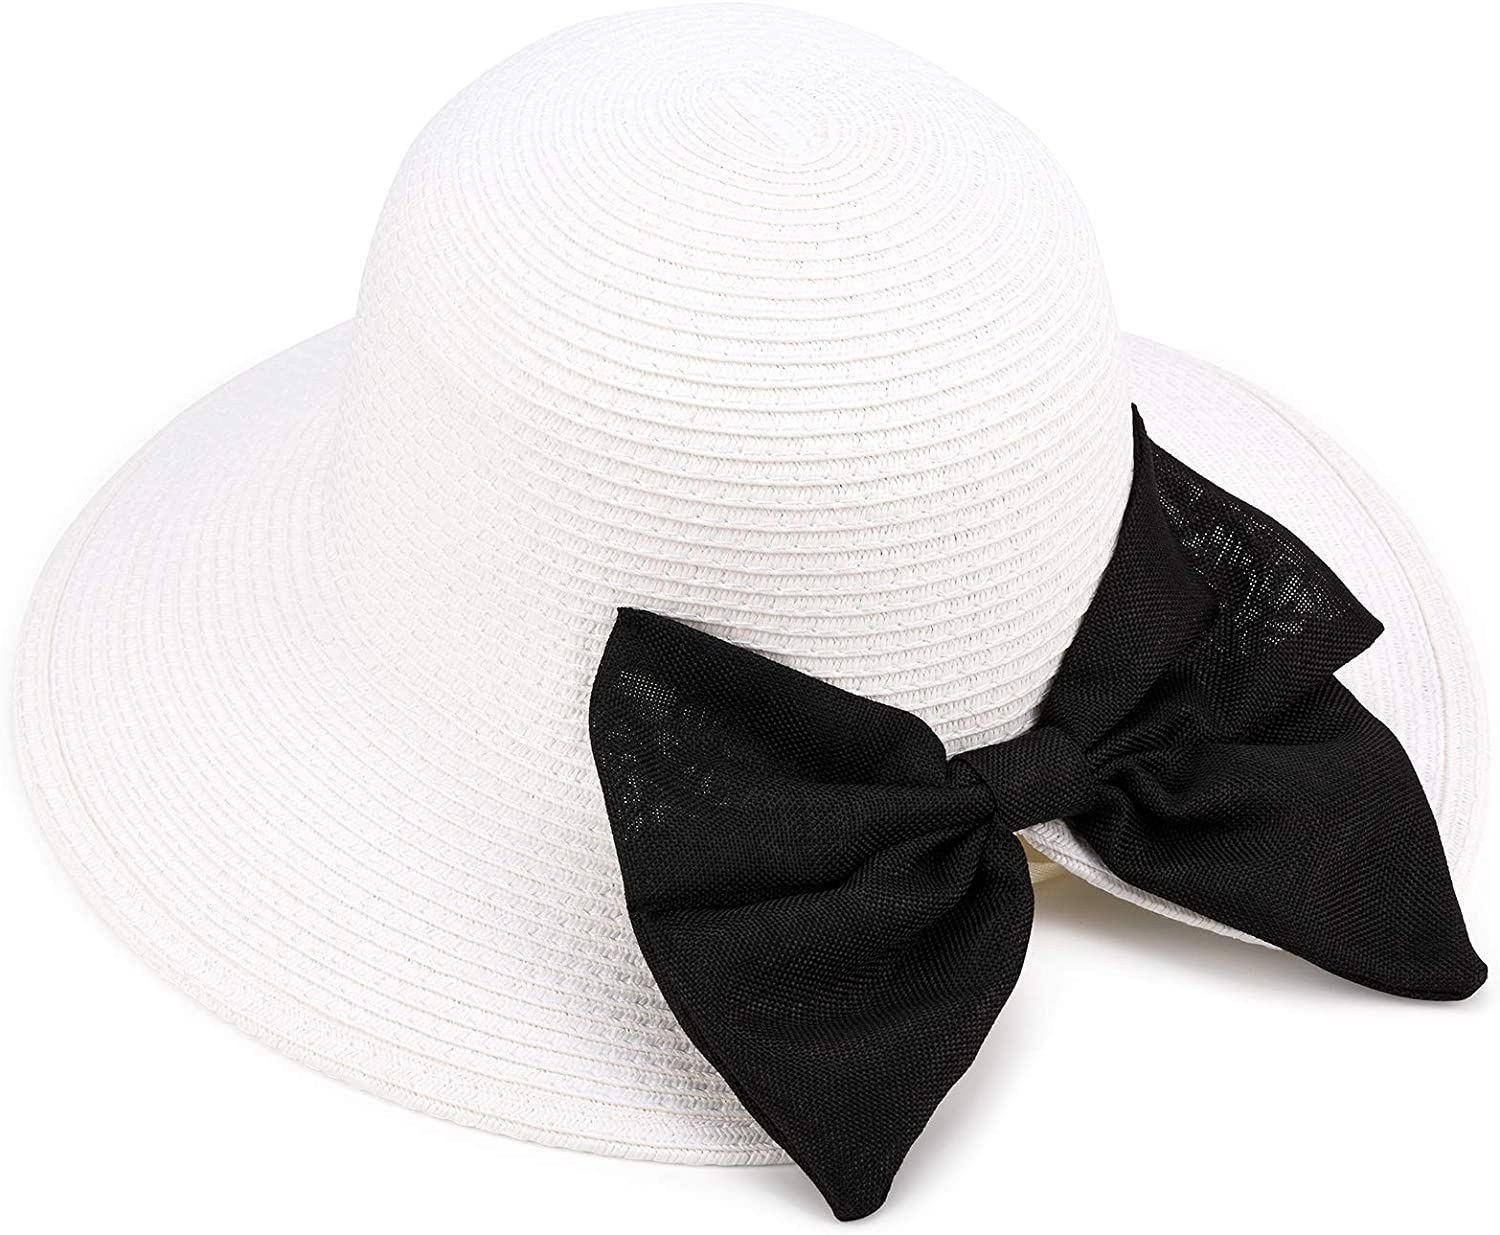 Sowift Women Sun Hats Floppy Summer Sun Beach Straw Hat UPF50 Foldable with Bowknot